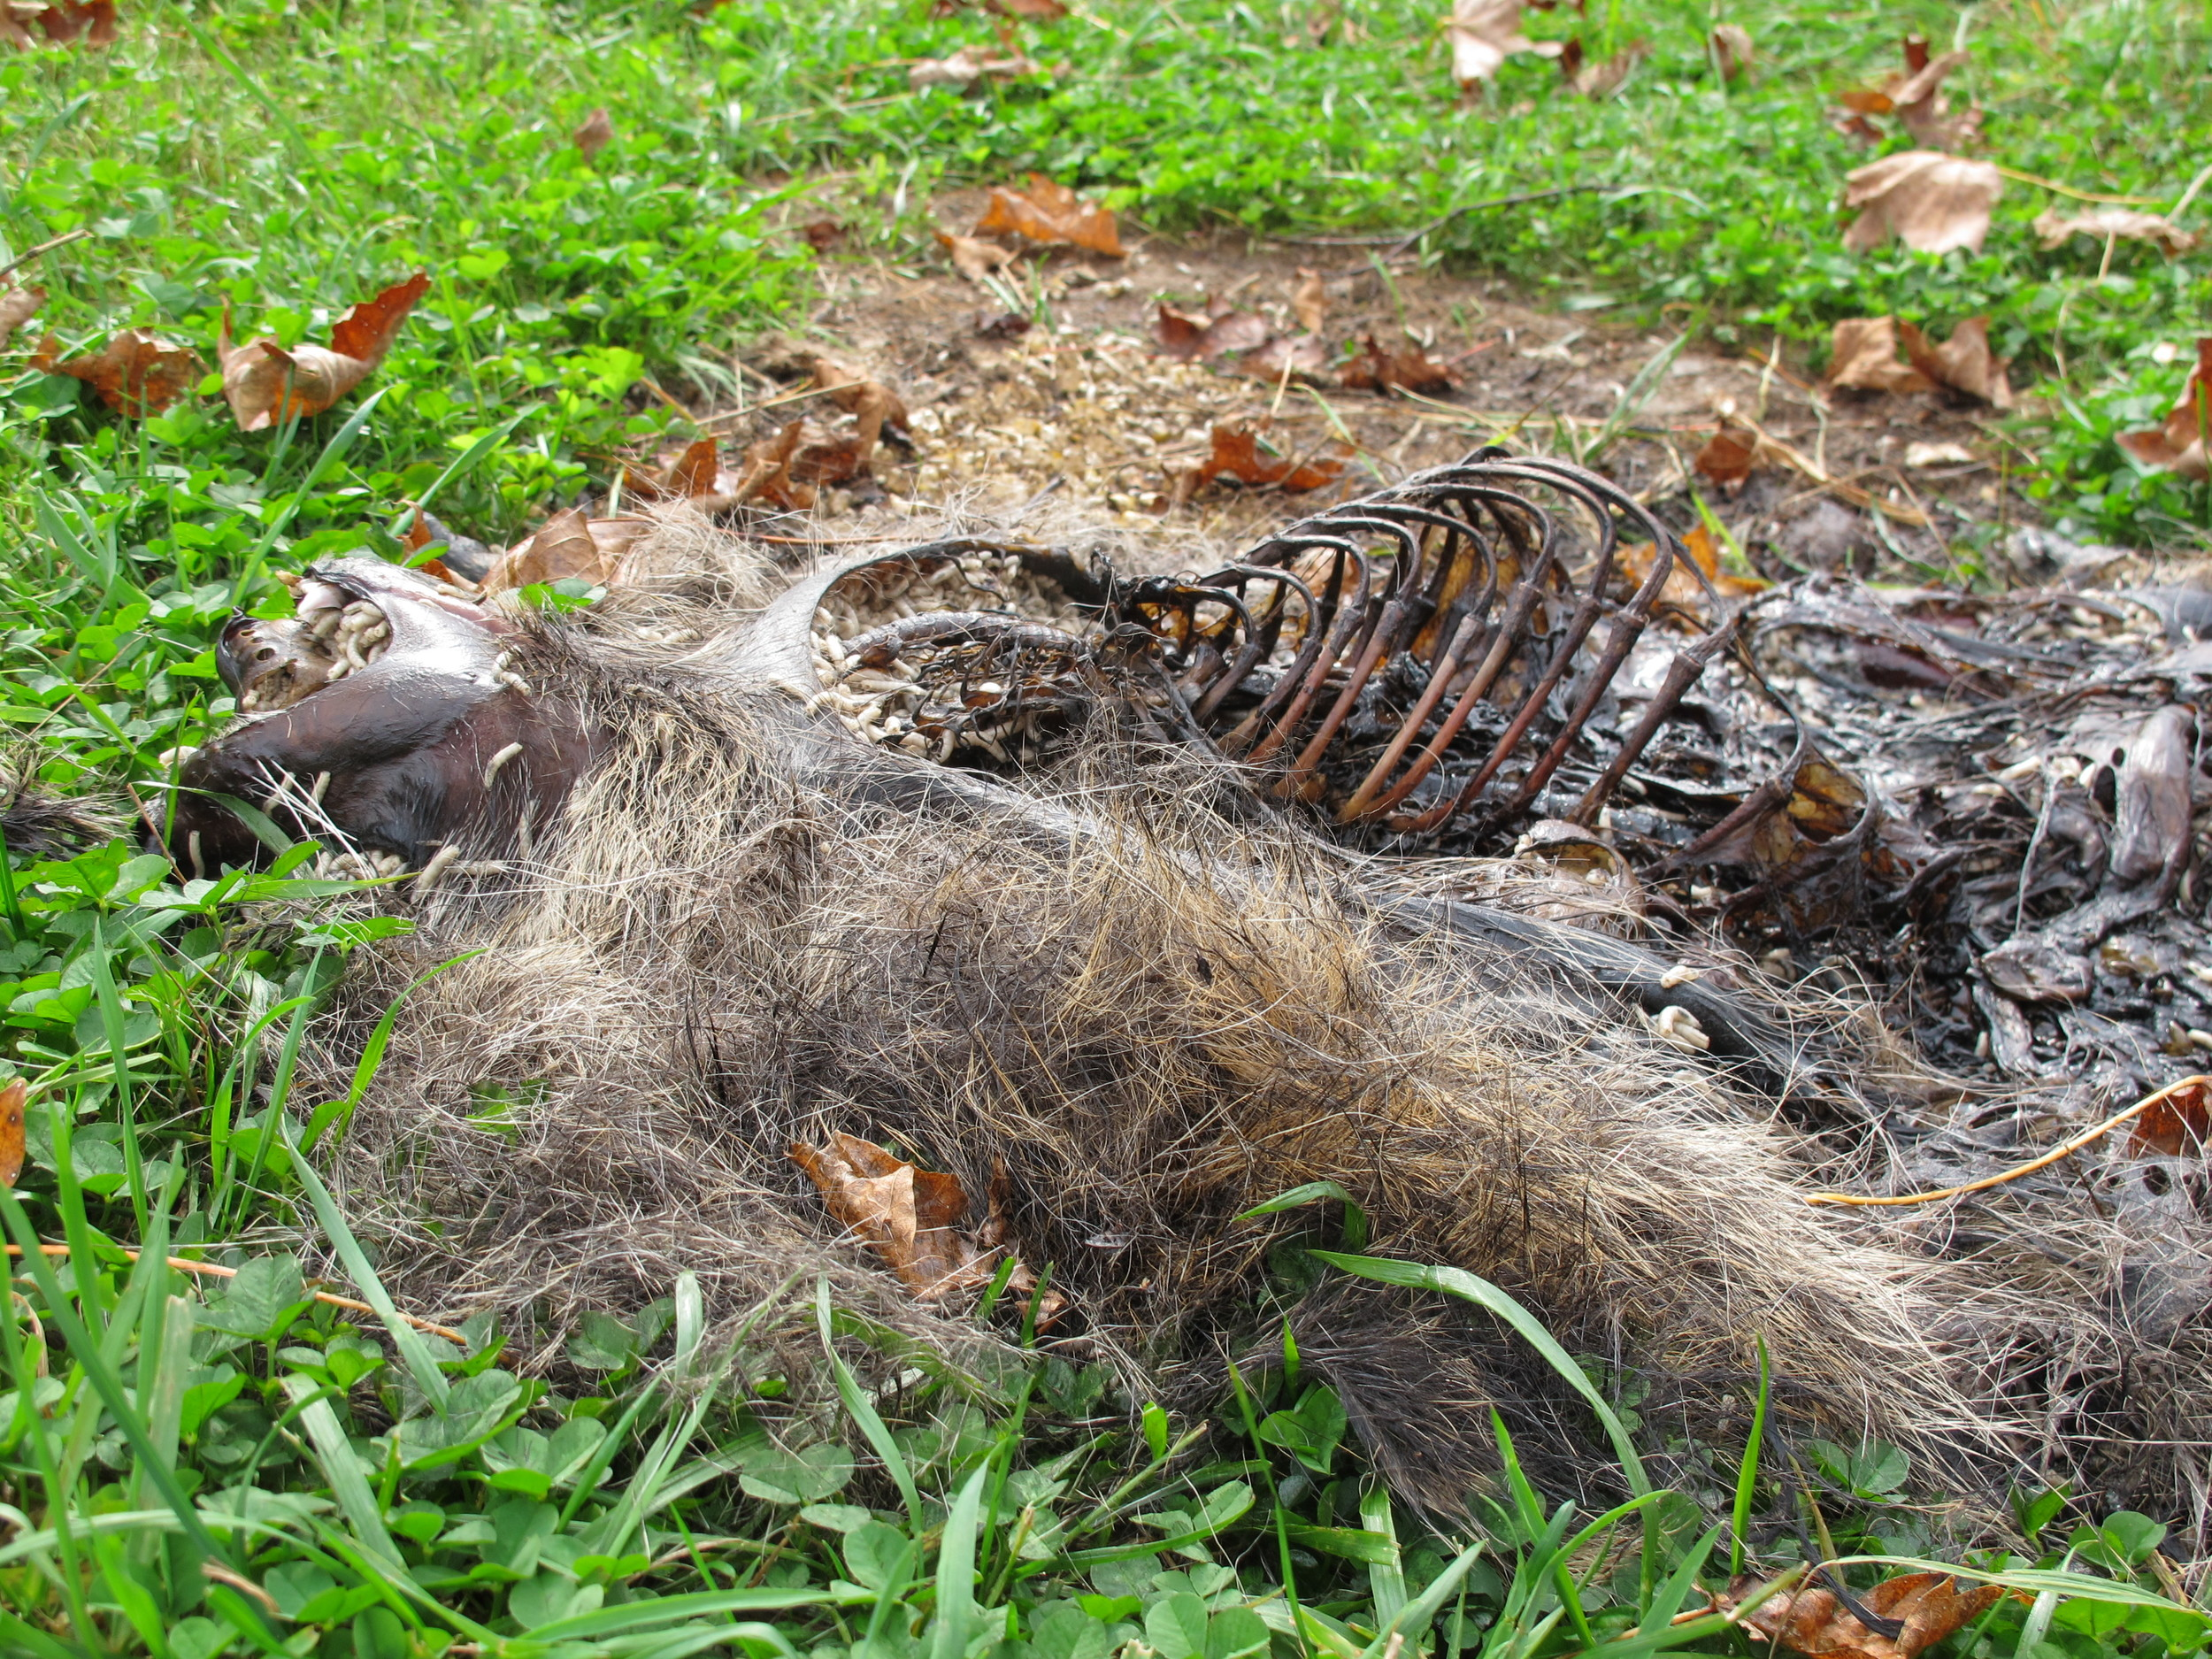 As I said, not a pretty sight, but a natural one. Bernd's observation of what happens to carcasses like this raccoon's help us all understand the workings of nature in greater detail.